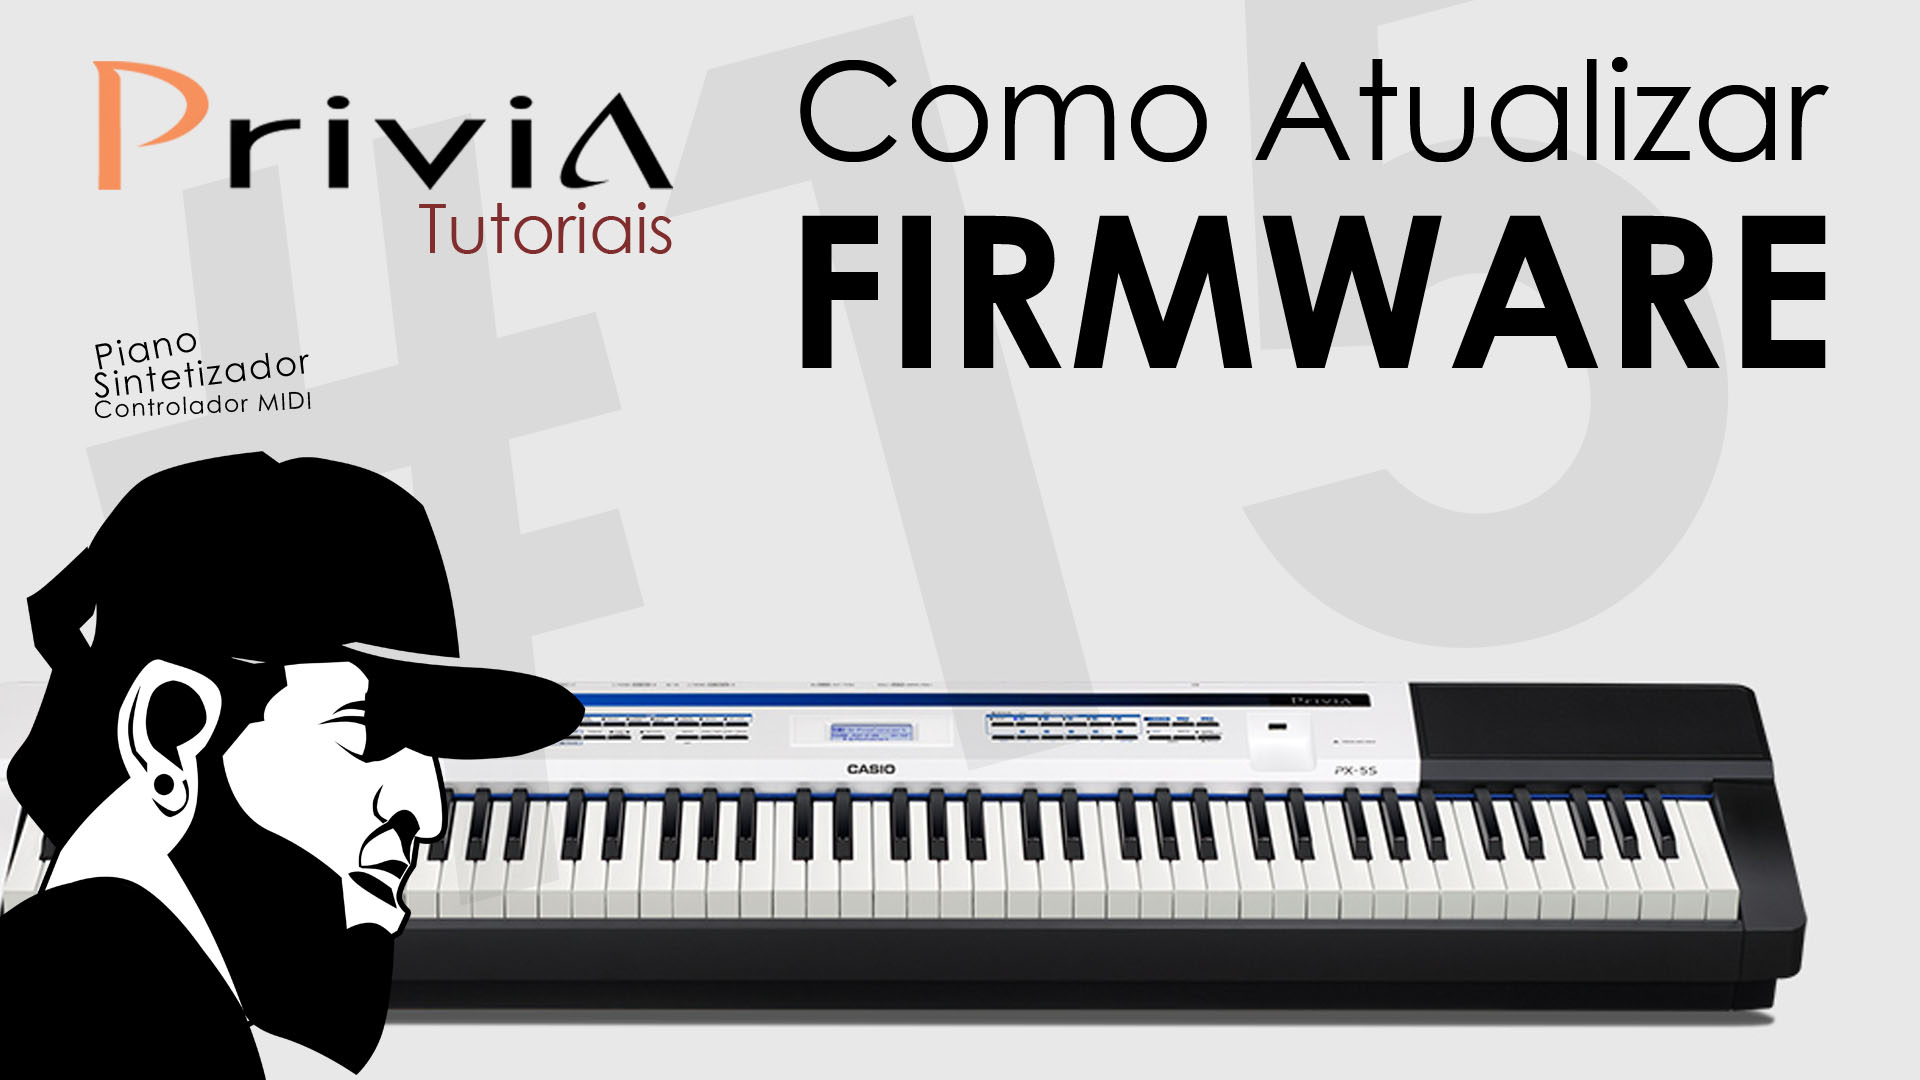 Como Atualizar o Firmware do Casio Privia PX-5S?